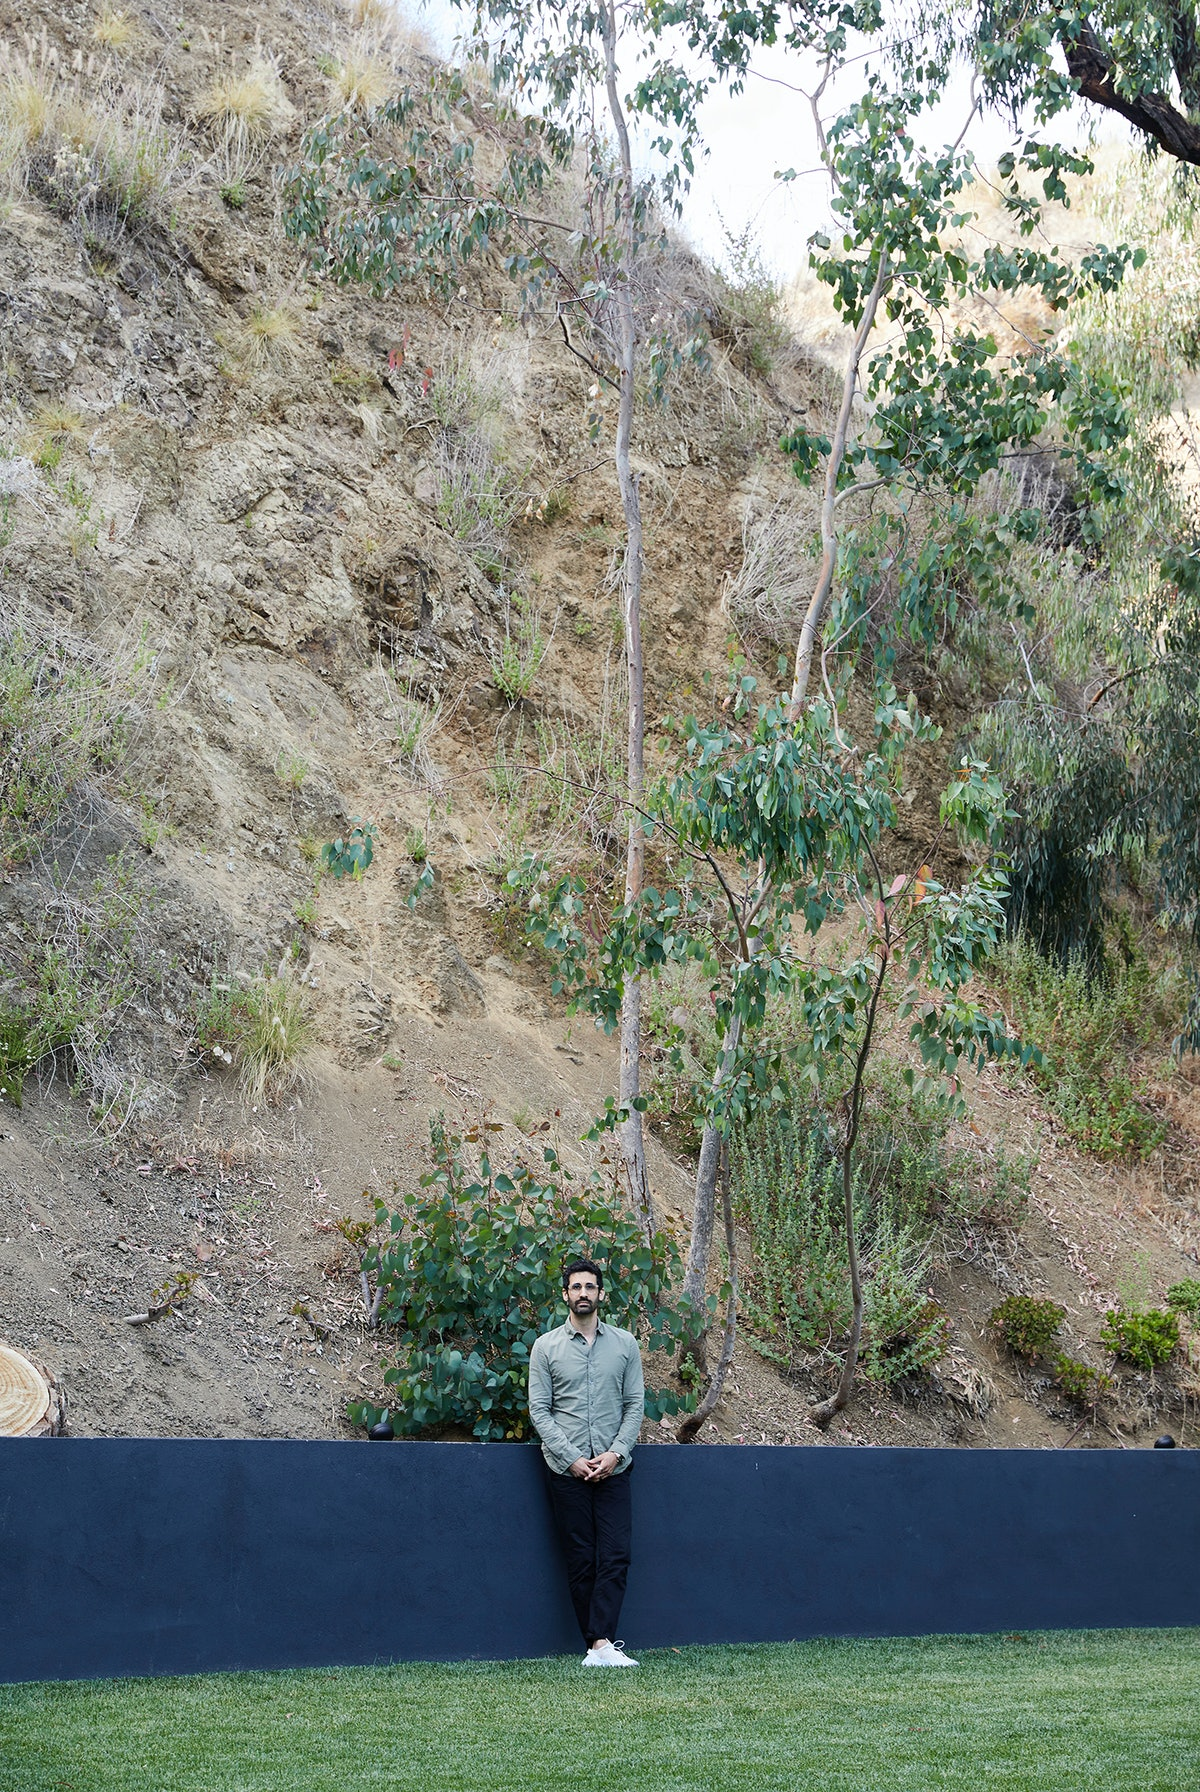 Kordansky in his backyard, against the hills of Griffith Park.